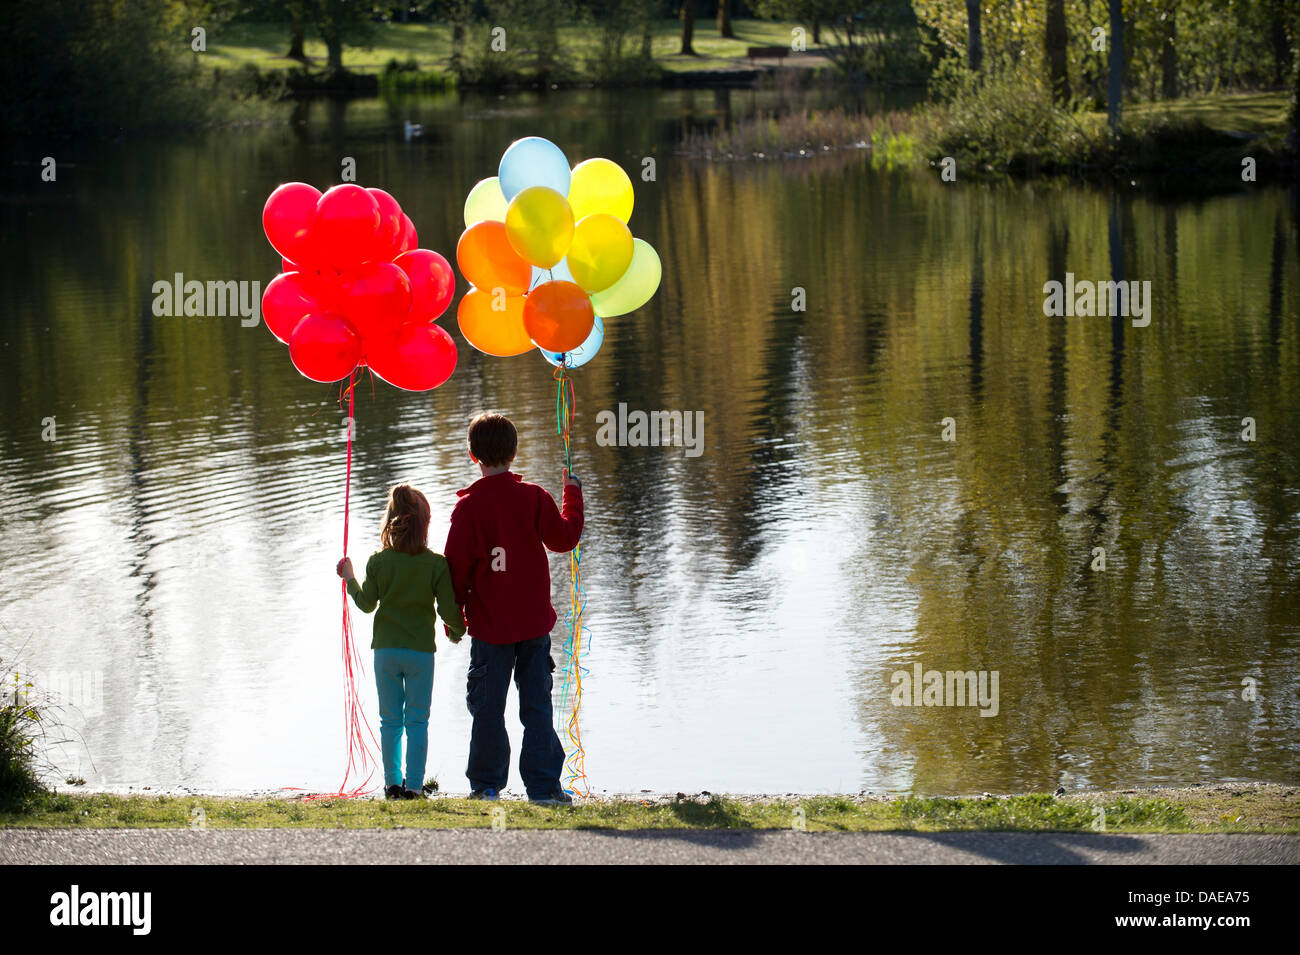 Brother and sister in front of lake with bunches of balloons - Stock Image